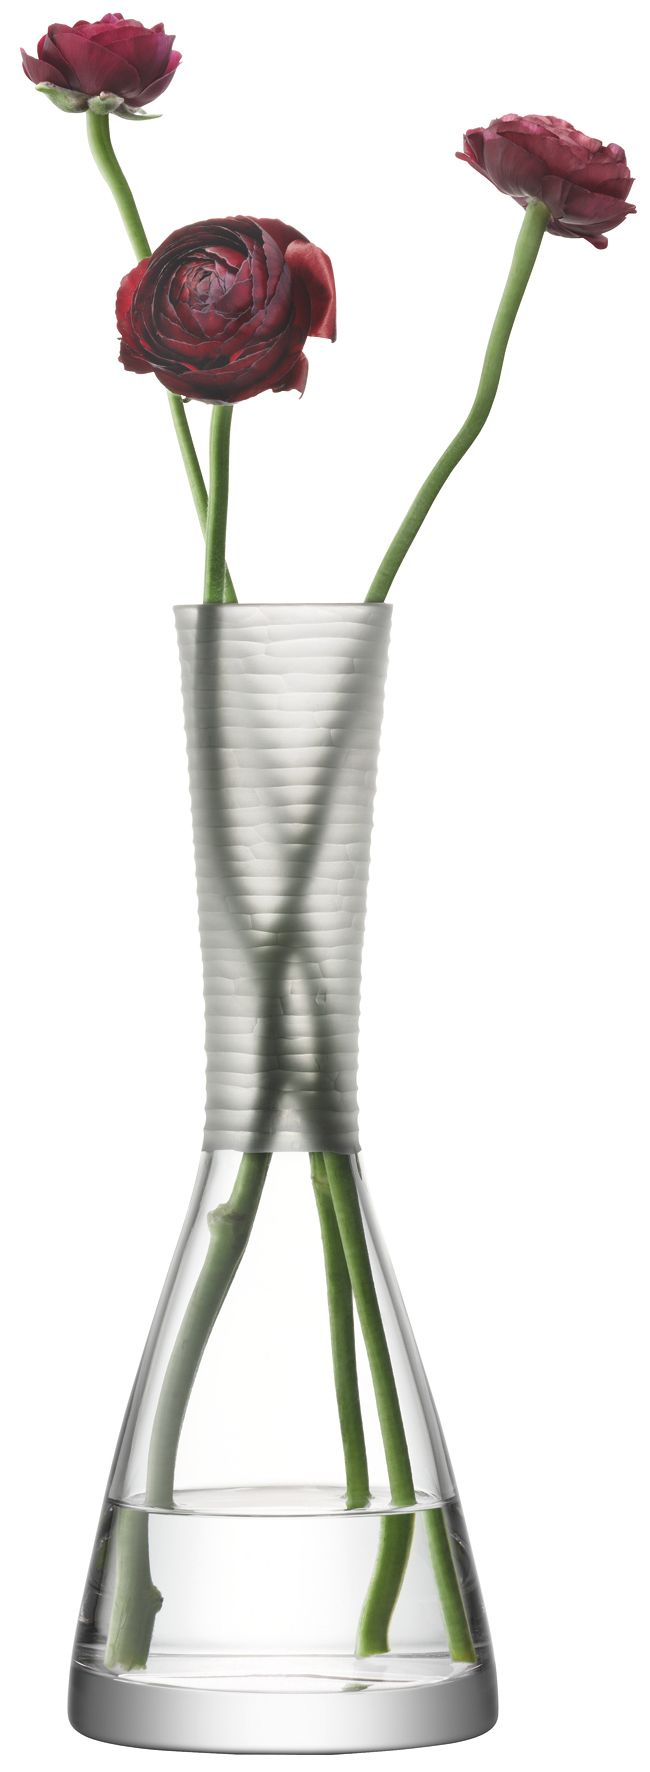 Organza matt cut vase height 30cm